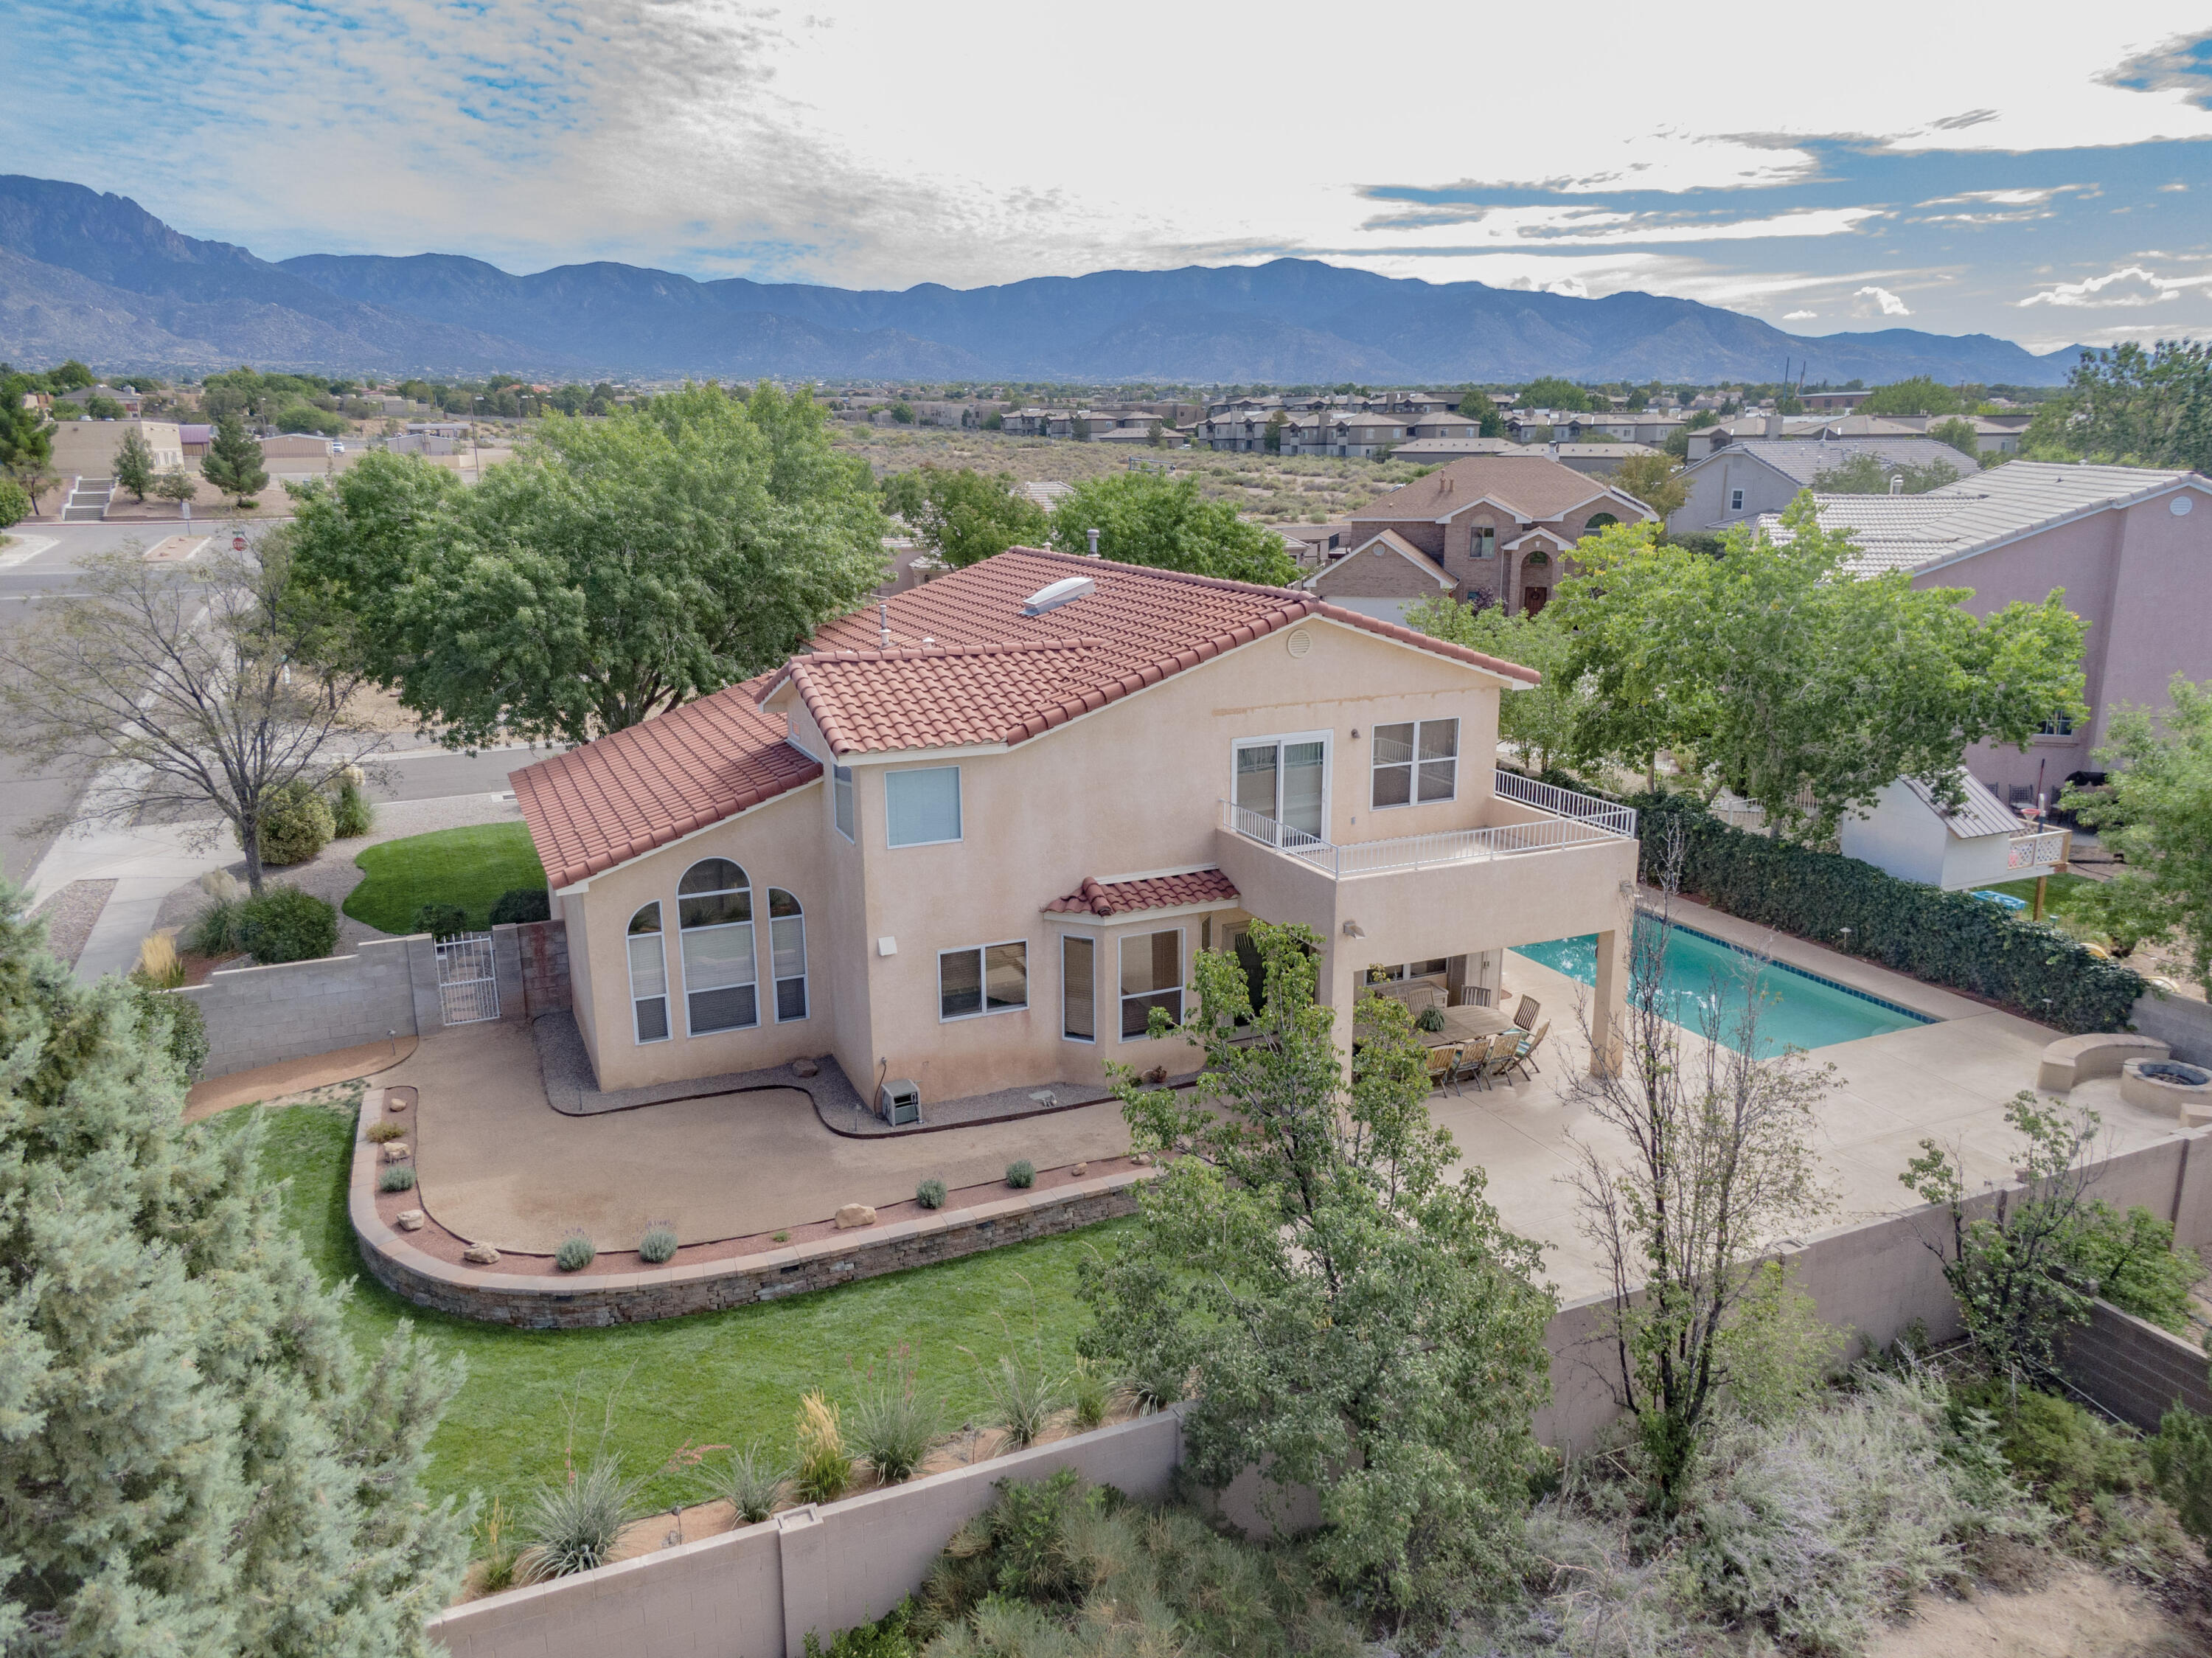 Spacious home located in the sought after La Cueva school district on a quiet cul de sac. Bedroom 1 is located downstairs w/ a 3/4 bathroom around the corner making for a great guest suite or in-law quarters.  No stairs for mom & pops!  Master bedroom is large and features 2 very expansive closets!  Balcony off the rear of the master with a new membrane cover.  Downstairs you'll find a living room & family room, plus a dining space AND eat-in kitchen.  But the prize of this home is the wonderful outdoor space!  Lush & beautifully maintained lawn in the front and back w/ 4 zone sprinkler system.  Plus a great corner lot which is just over a quarter acre!  Covered patio, firepit w/ built-in banco, In-ground Saltwater pool features an automatic lockable cover, plus a solar heater.